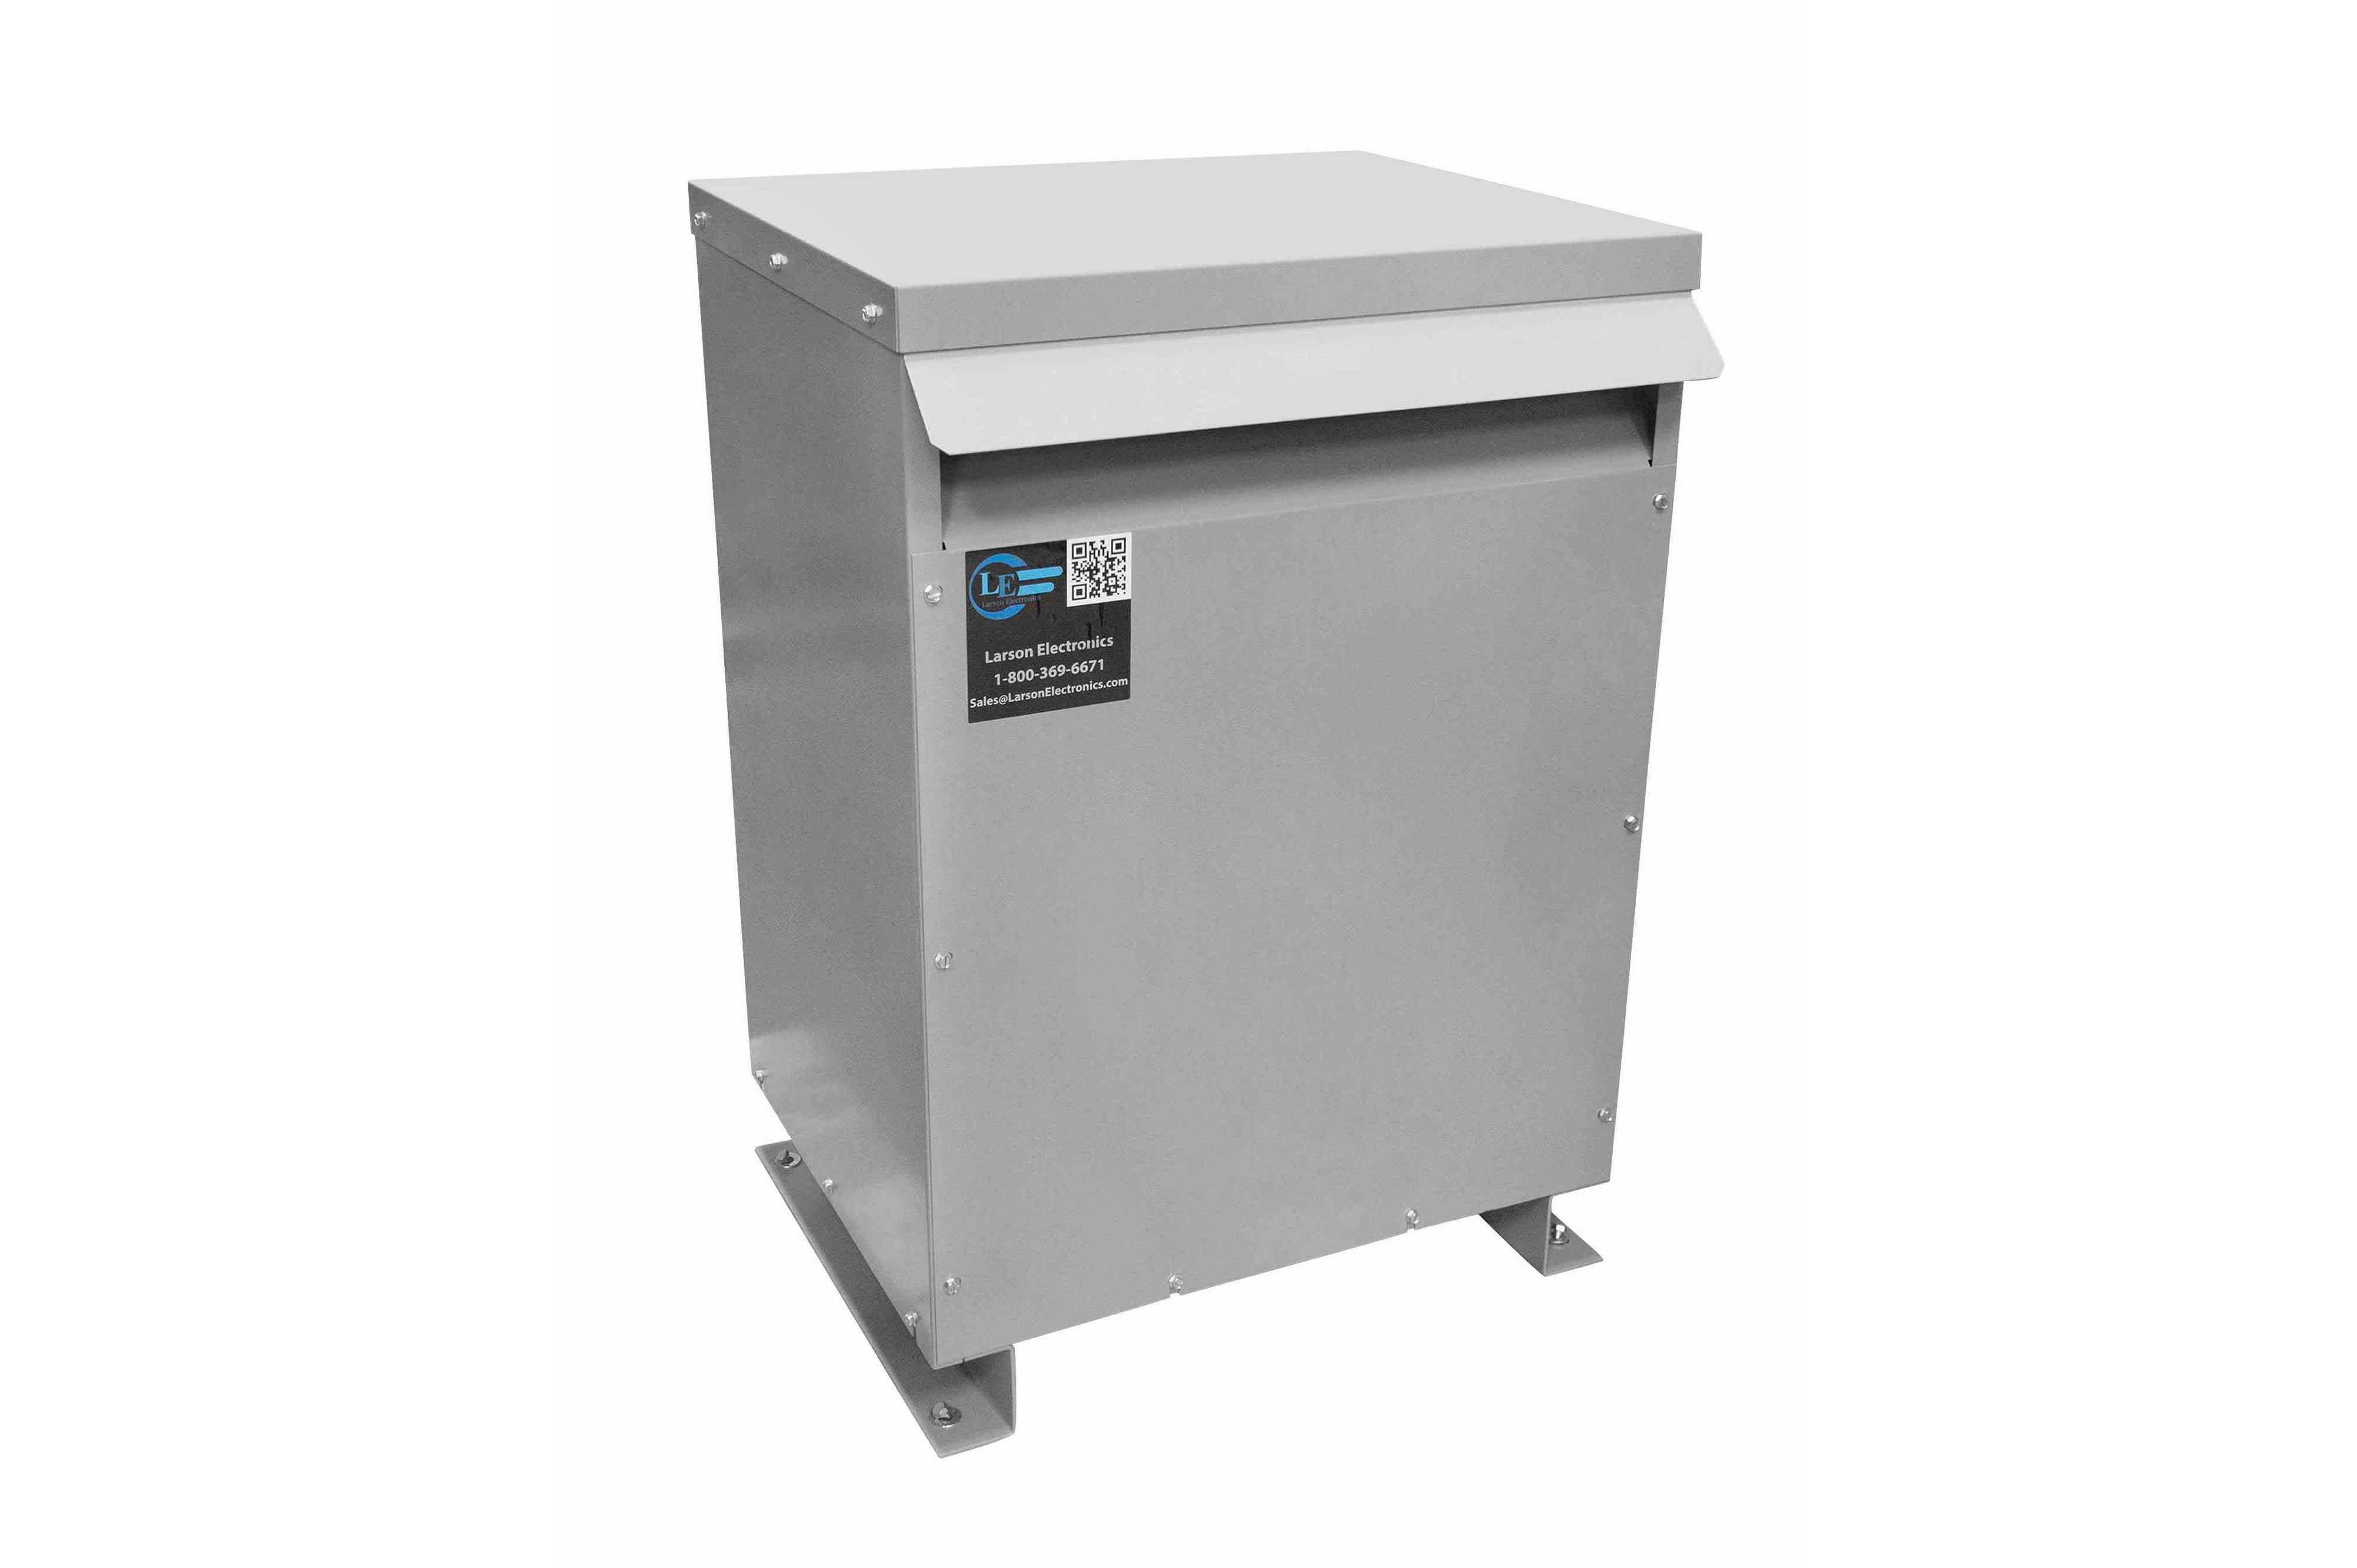 40 kVA 3PH Isolation Transformer, 400V Wye Primary, 480V Delta Secondary, N3R, Ventilated, 60 Hz